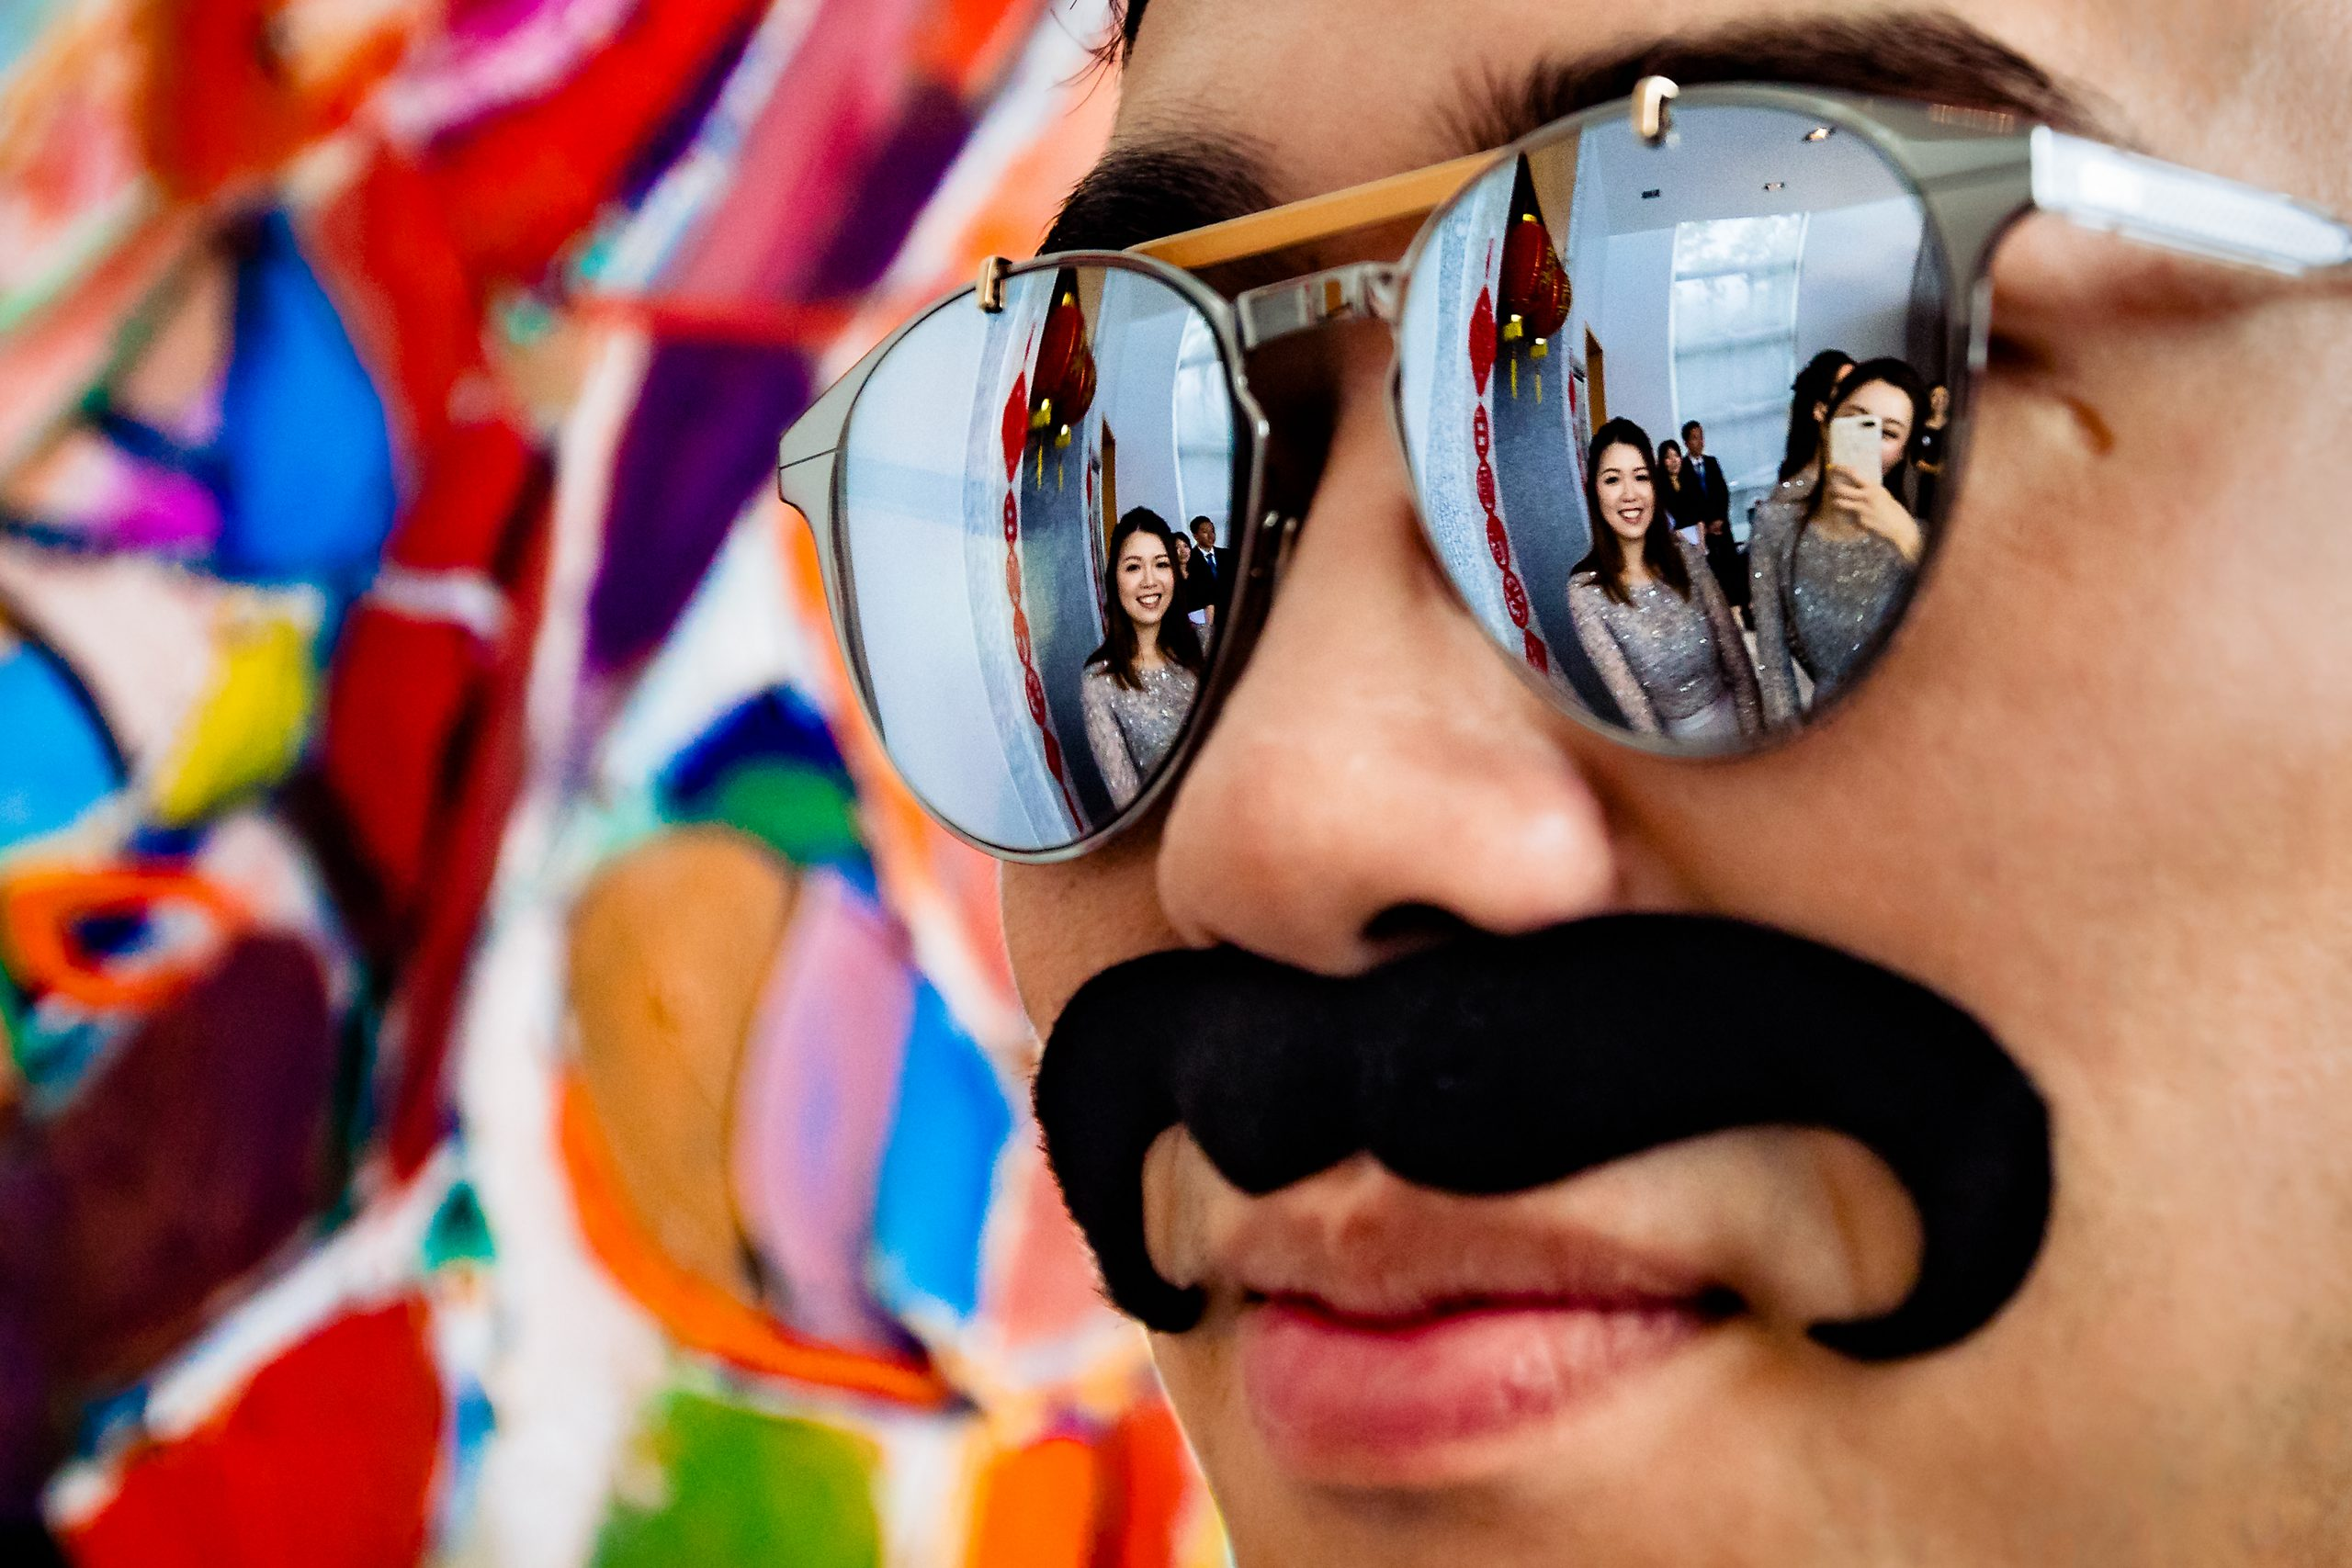 Reflection of bridesmaids is seen in sunglasses of man wearing a fake mustache